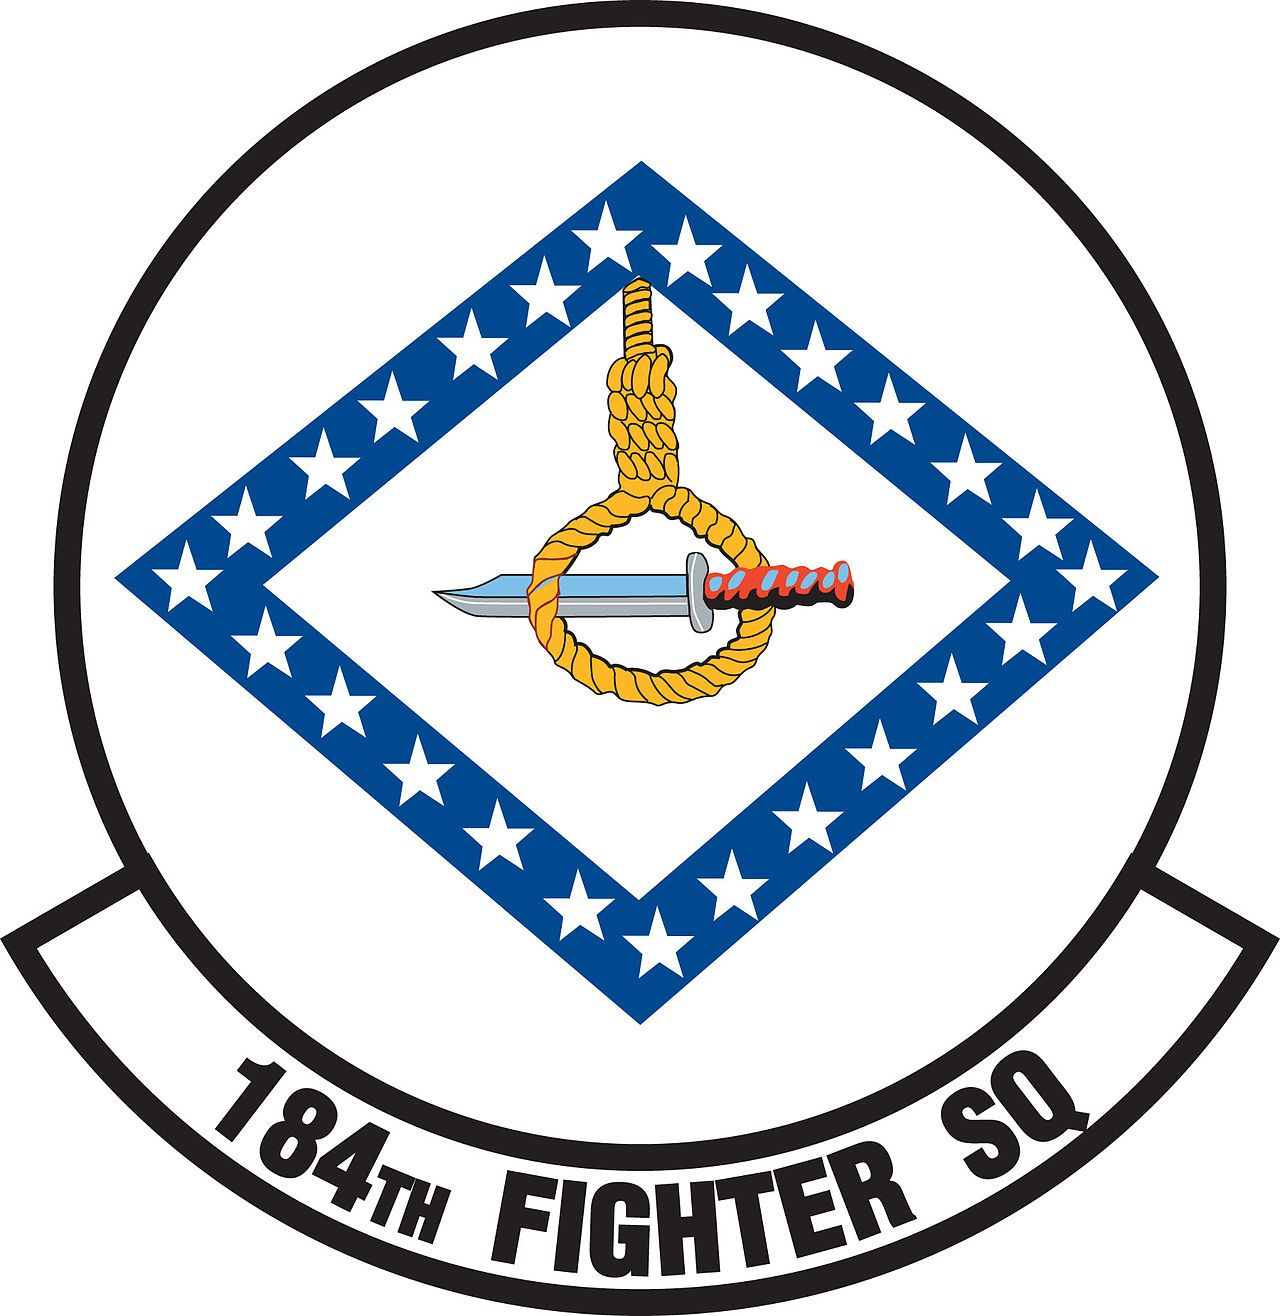 184th Attack Squadron Wikipedia Air force patches